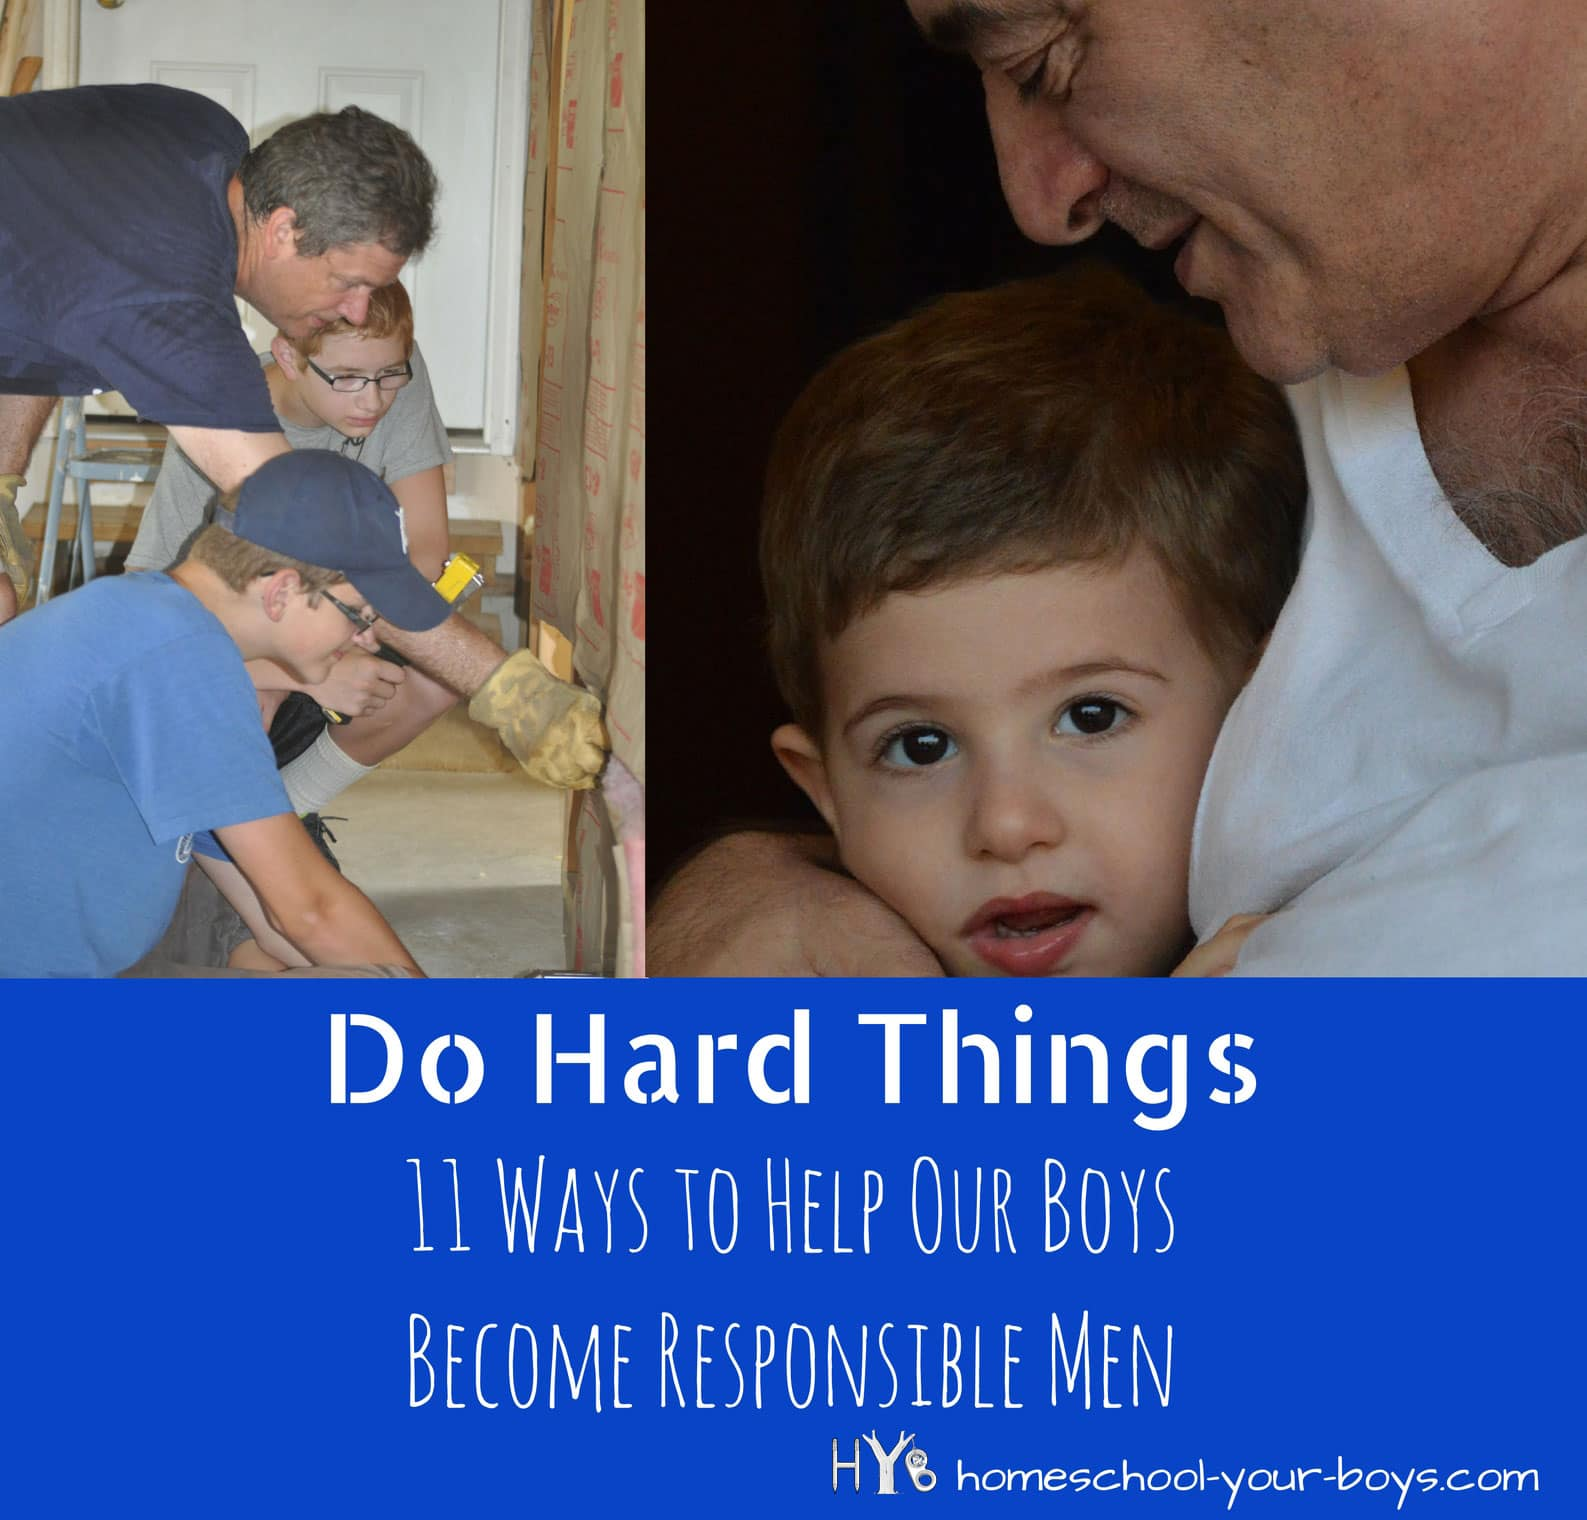 Do Hard Things - 11 Ways to Help Our Boys Become Men: Do you want your son to someday become a responsible man? Have him do hard things now. Here are 11 suggestions for raising a son who will be a real man.